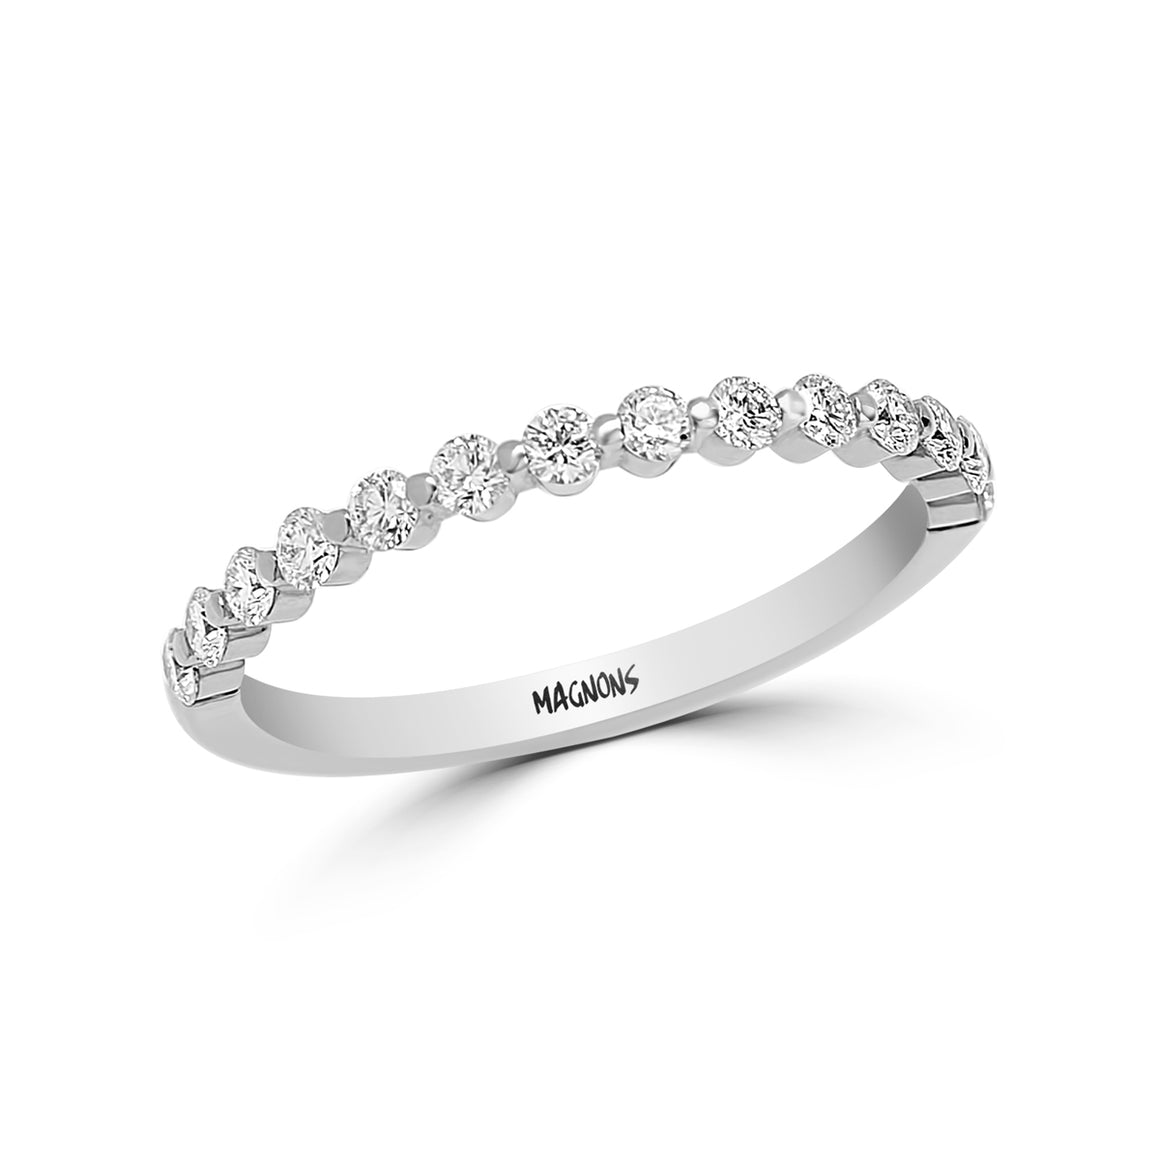 NATURAL DIAMOND WEDDING BAND